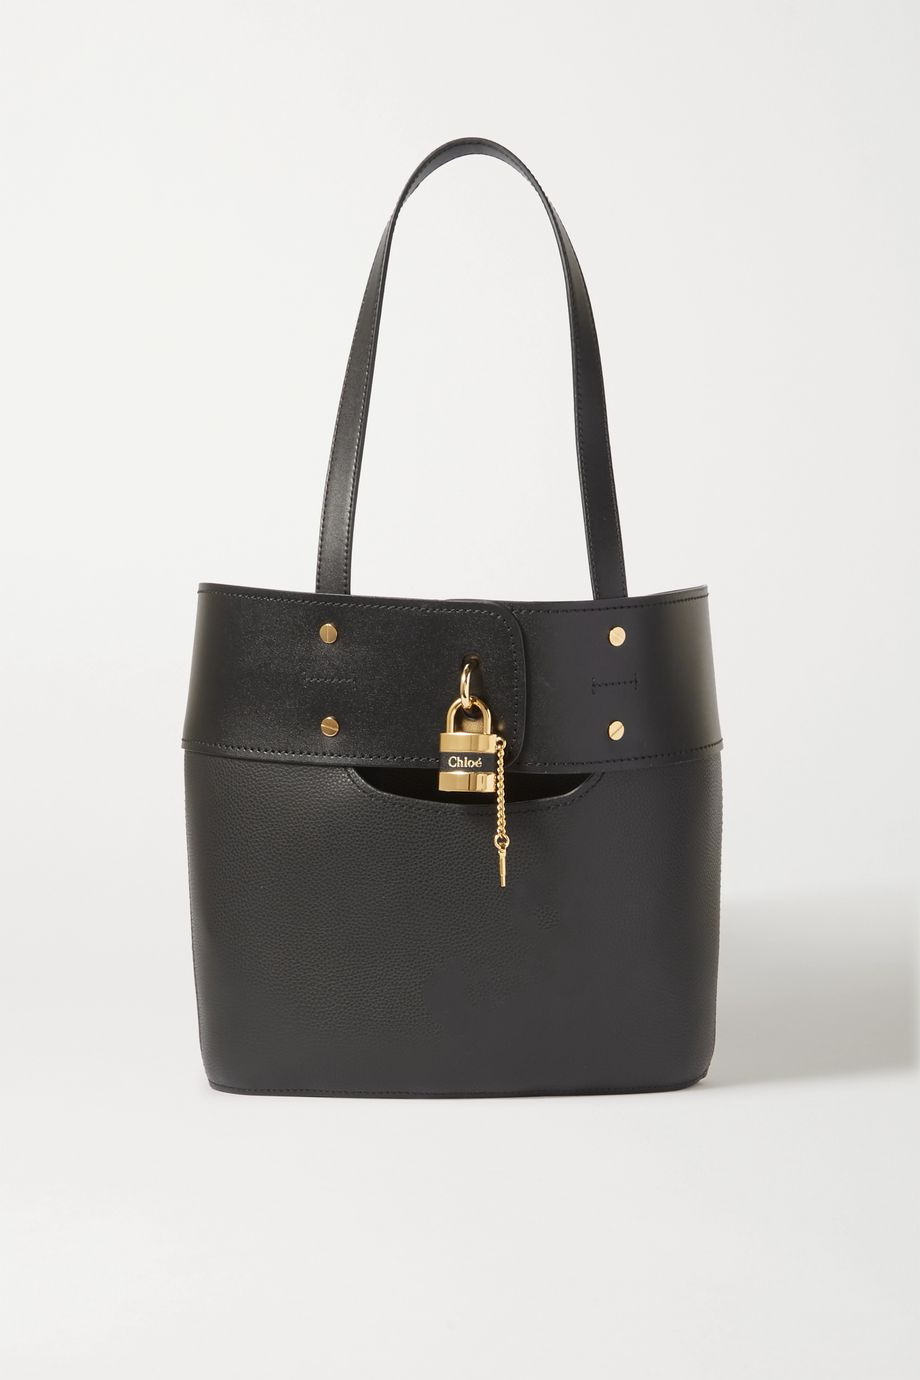 Chloé Aby textured-leather tote